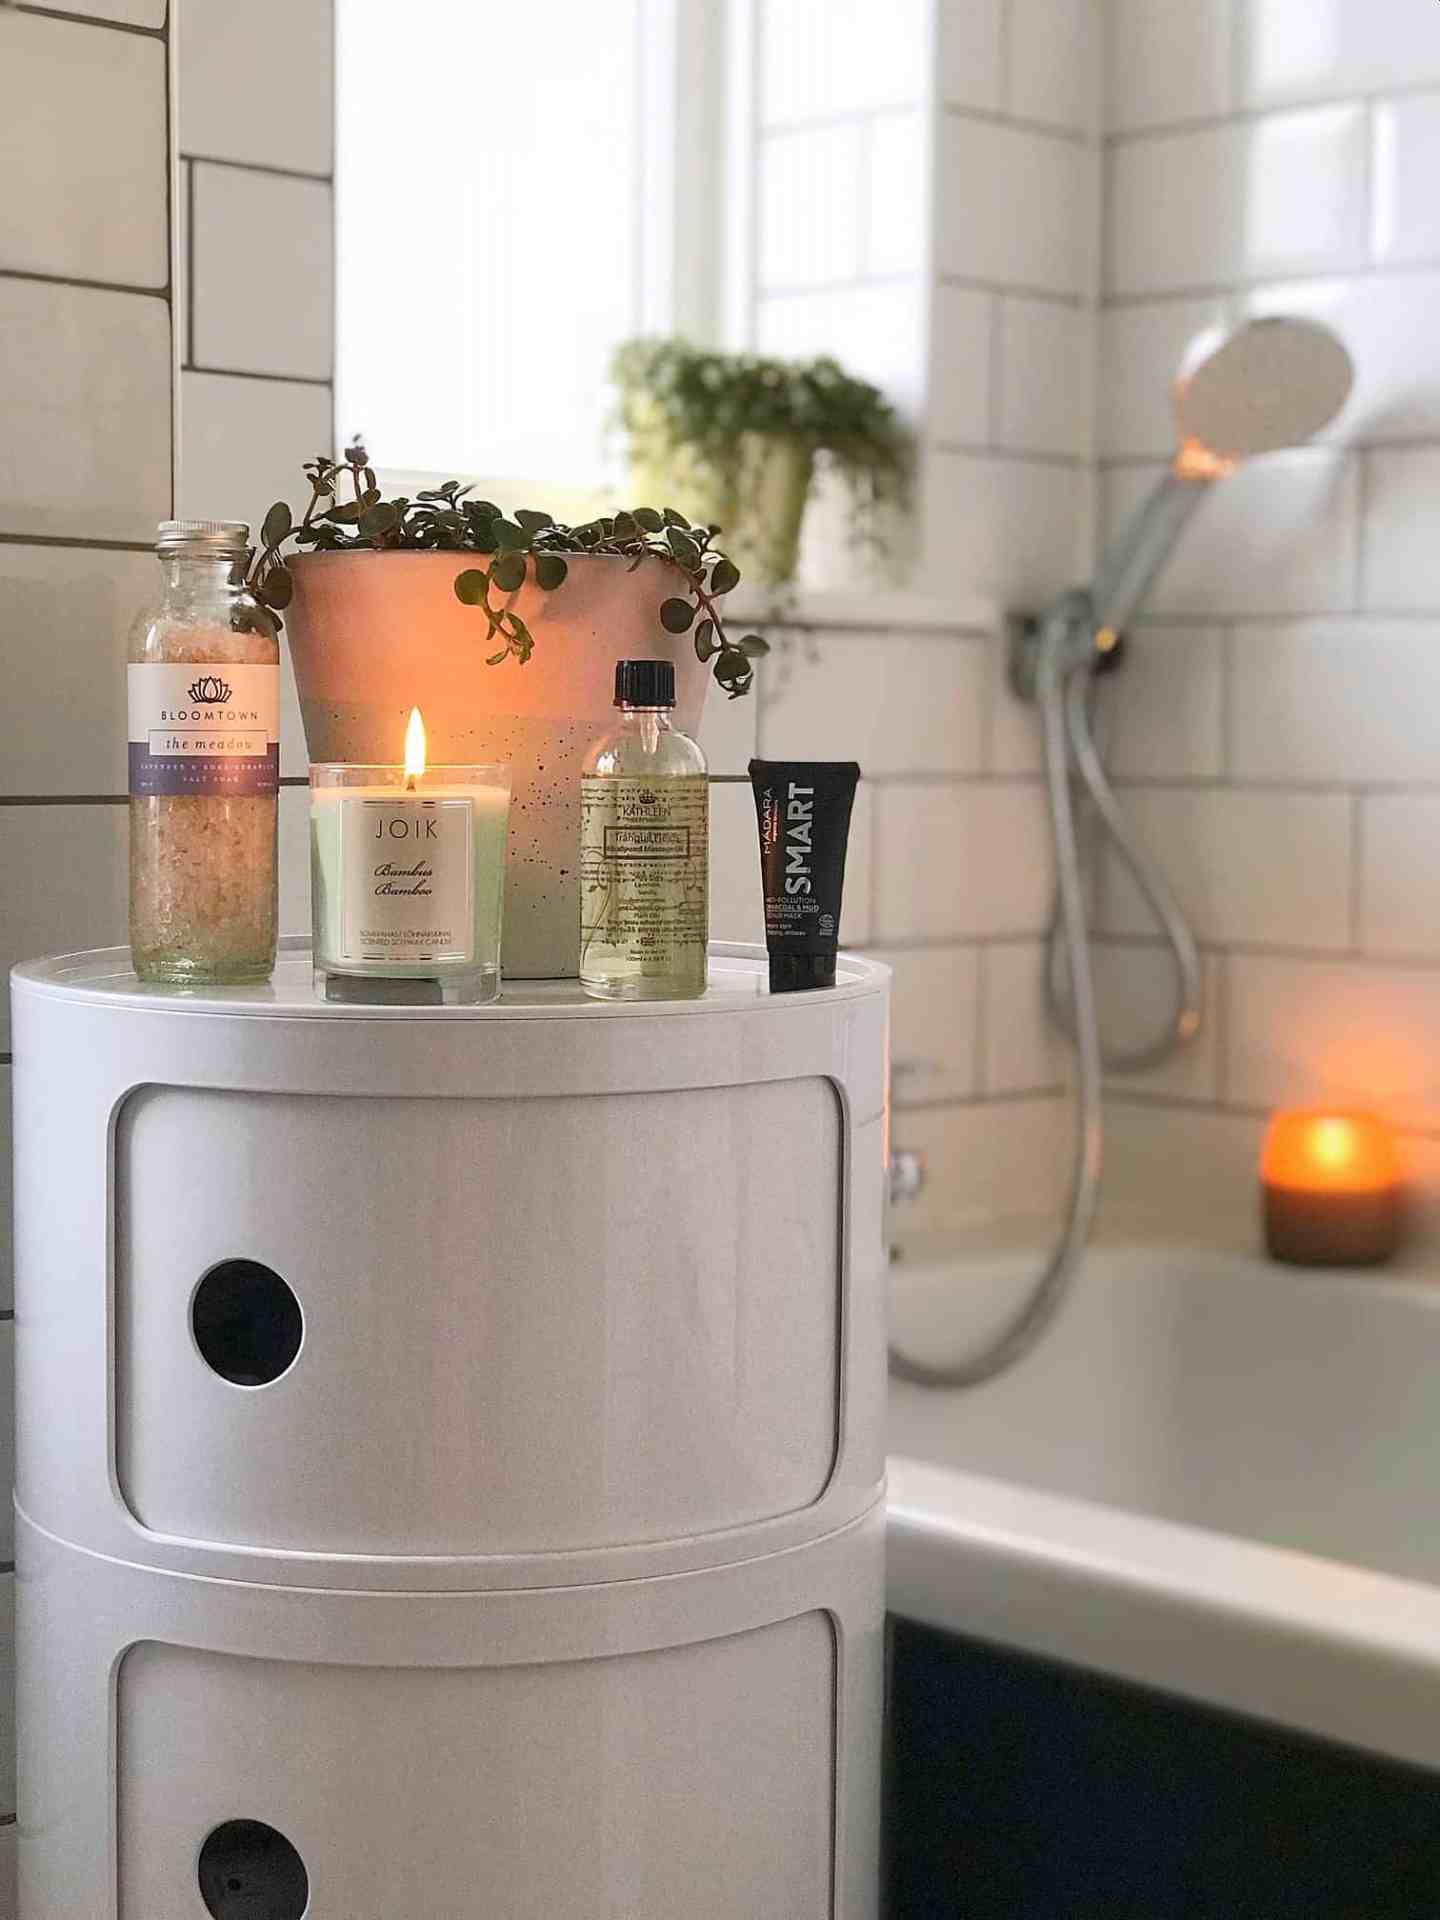 Scented candles and natural beauty products in a monochrome bathroom